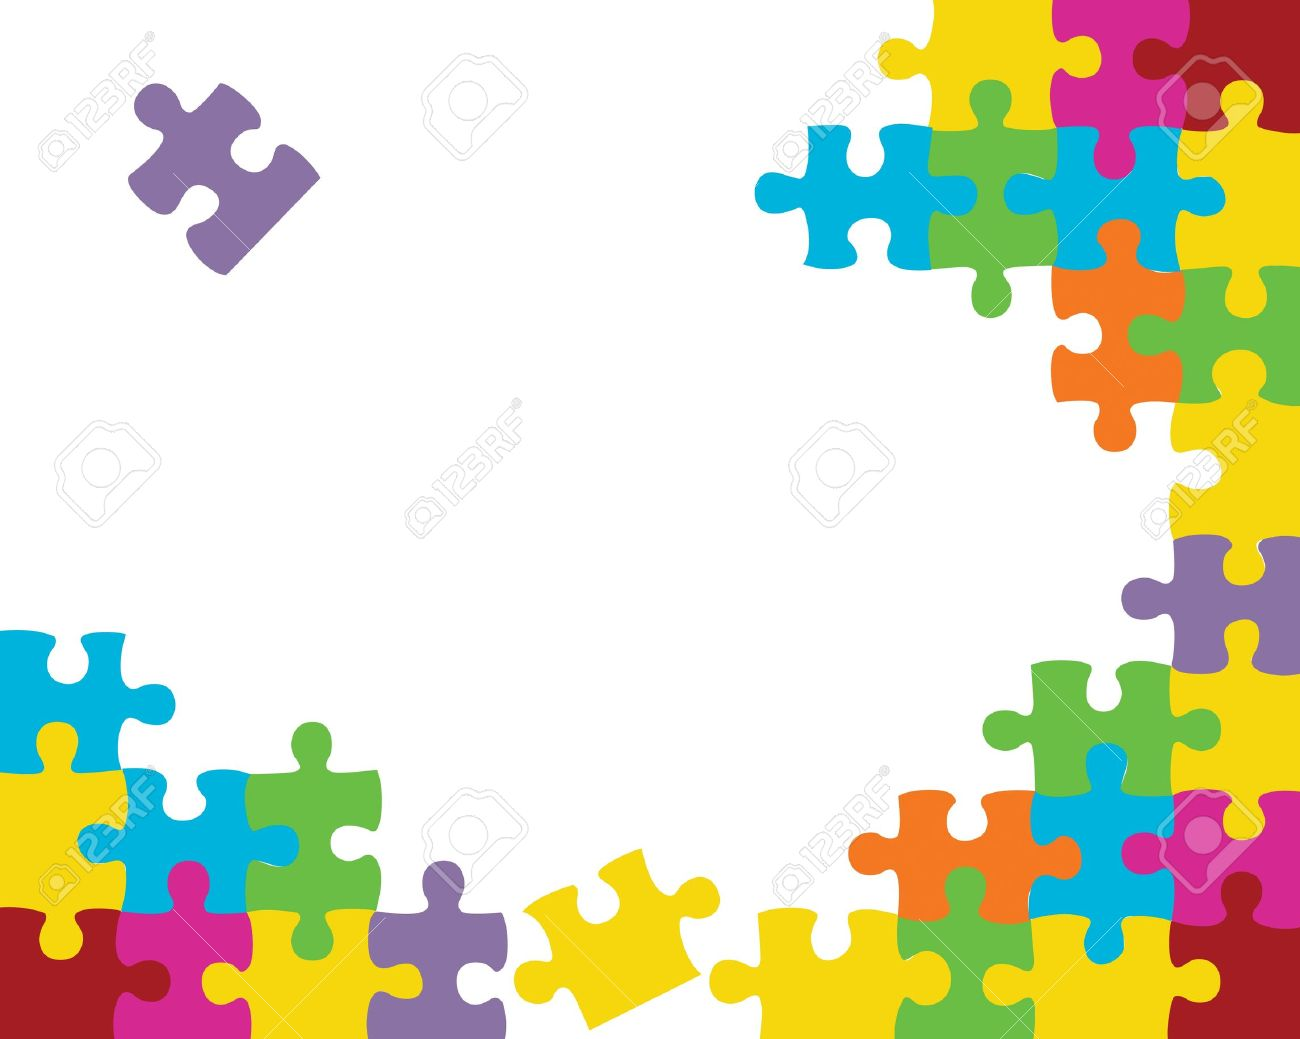 C:\Users\User\Desktop\10350487-Abstract-jigsaw-puzzle-background-illustration-Stock-Vector-piece.jpg